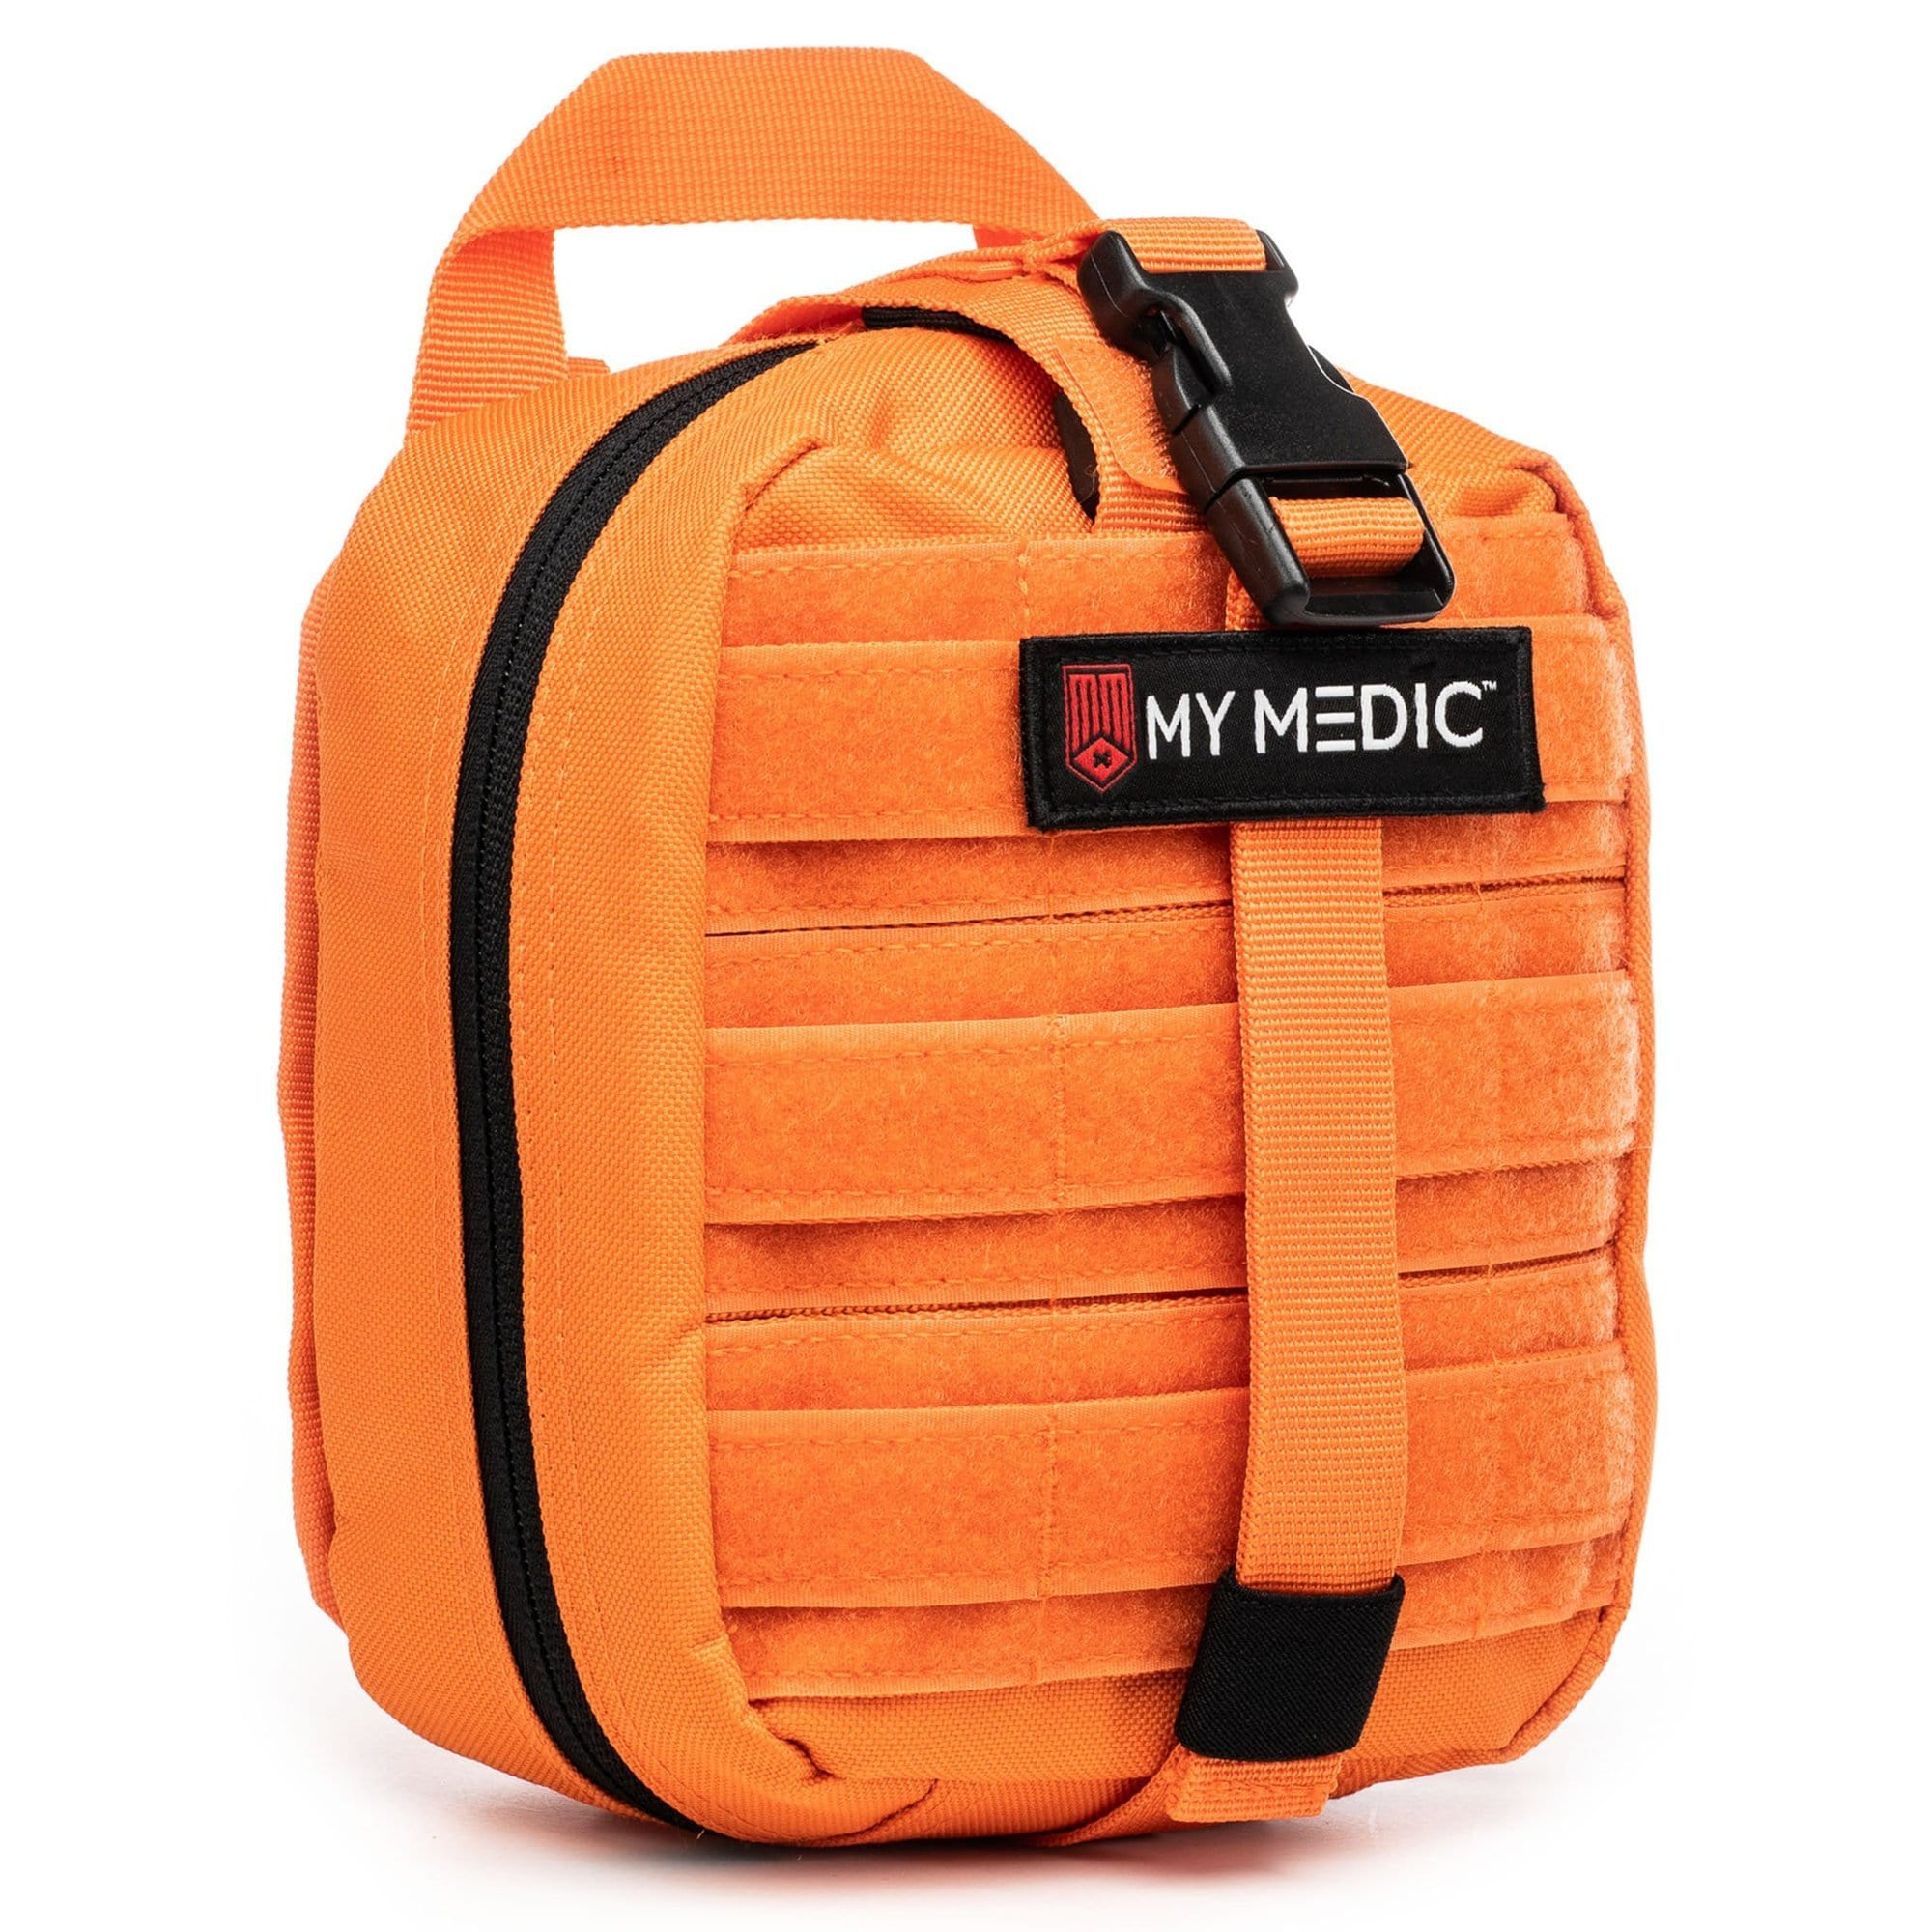 MyFAK: Advanced Individual First Aid Kit [IFAK] by MyMedic (color: ORANGE)